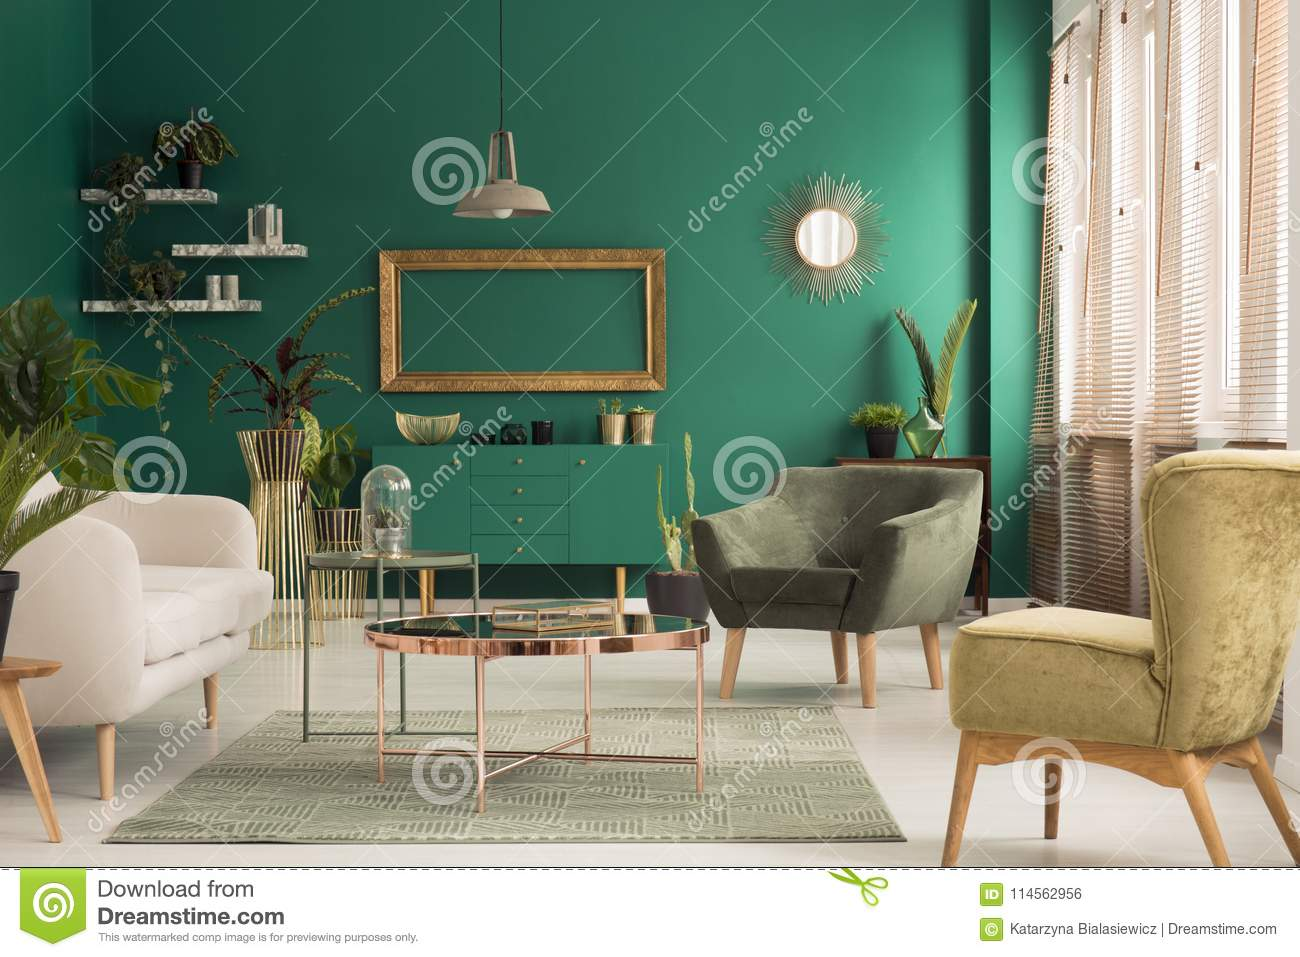 Green And Gold Living Room Stock Photo Image Of Green 114562956